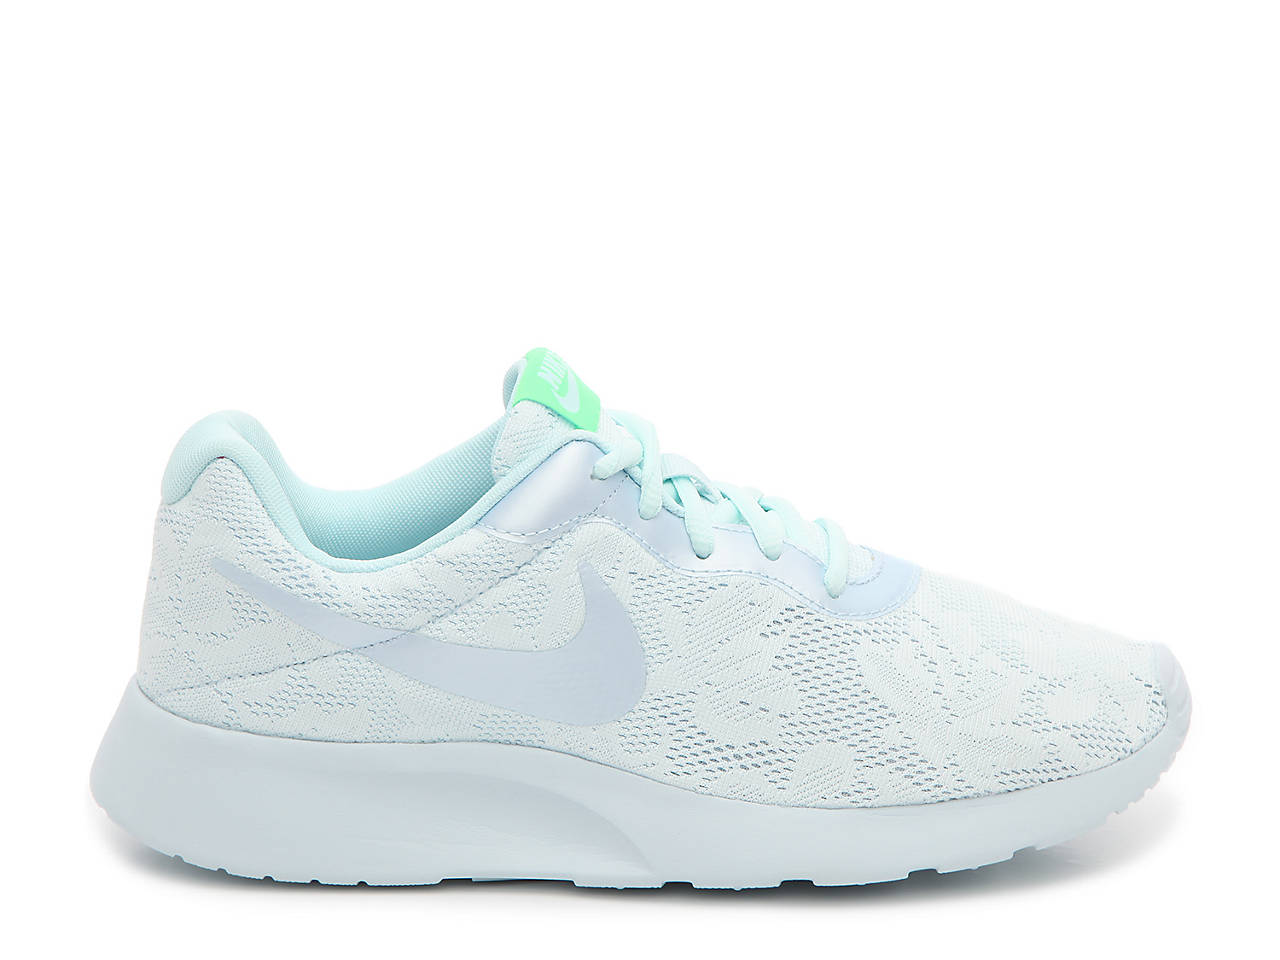 Nike Tanjun Knit Sneakers Clearance Footlocker Finishline Cheap Hot Sale Clearance Official Site Sale Pre Order Hot Sale l7A40LRsY